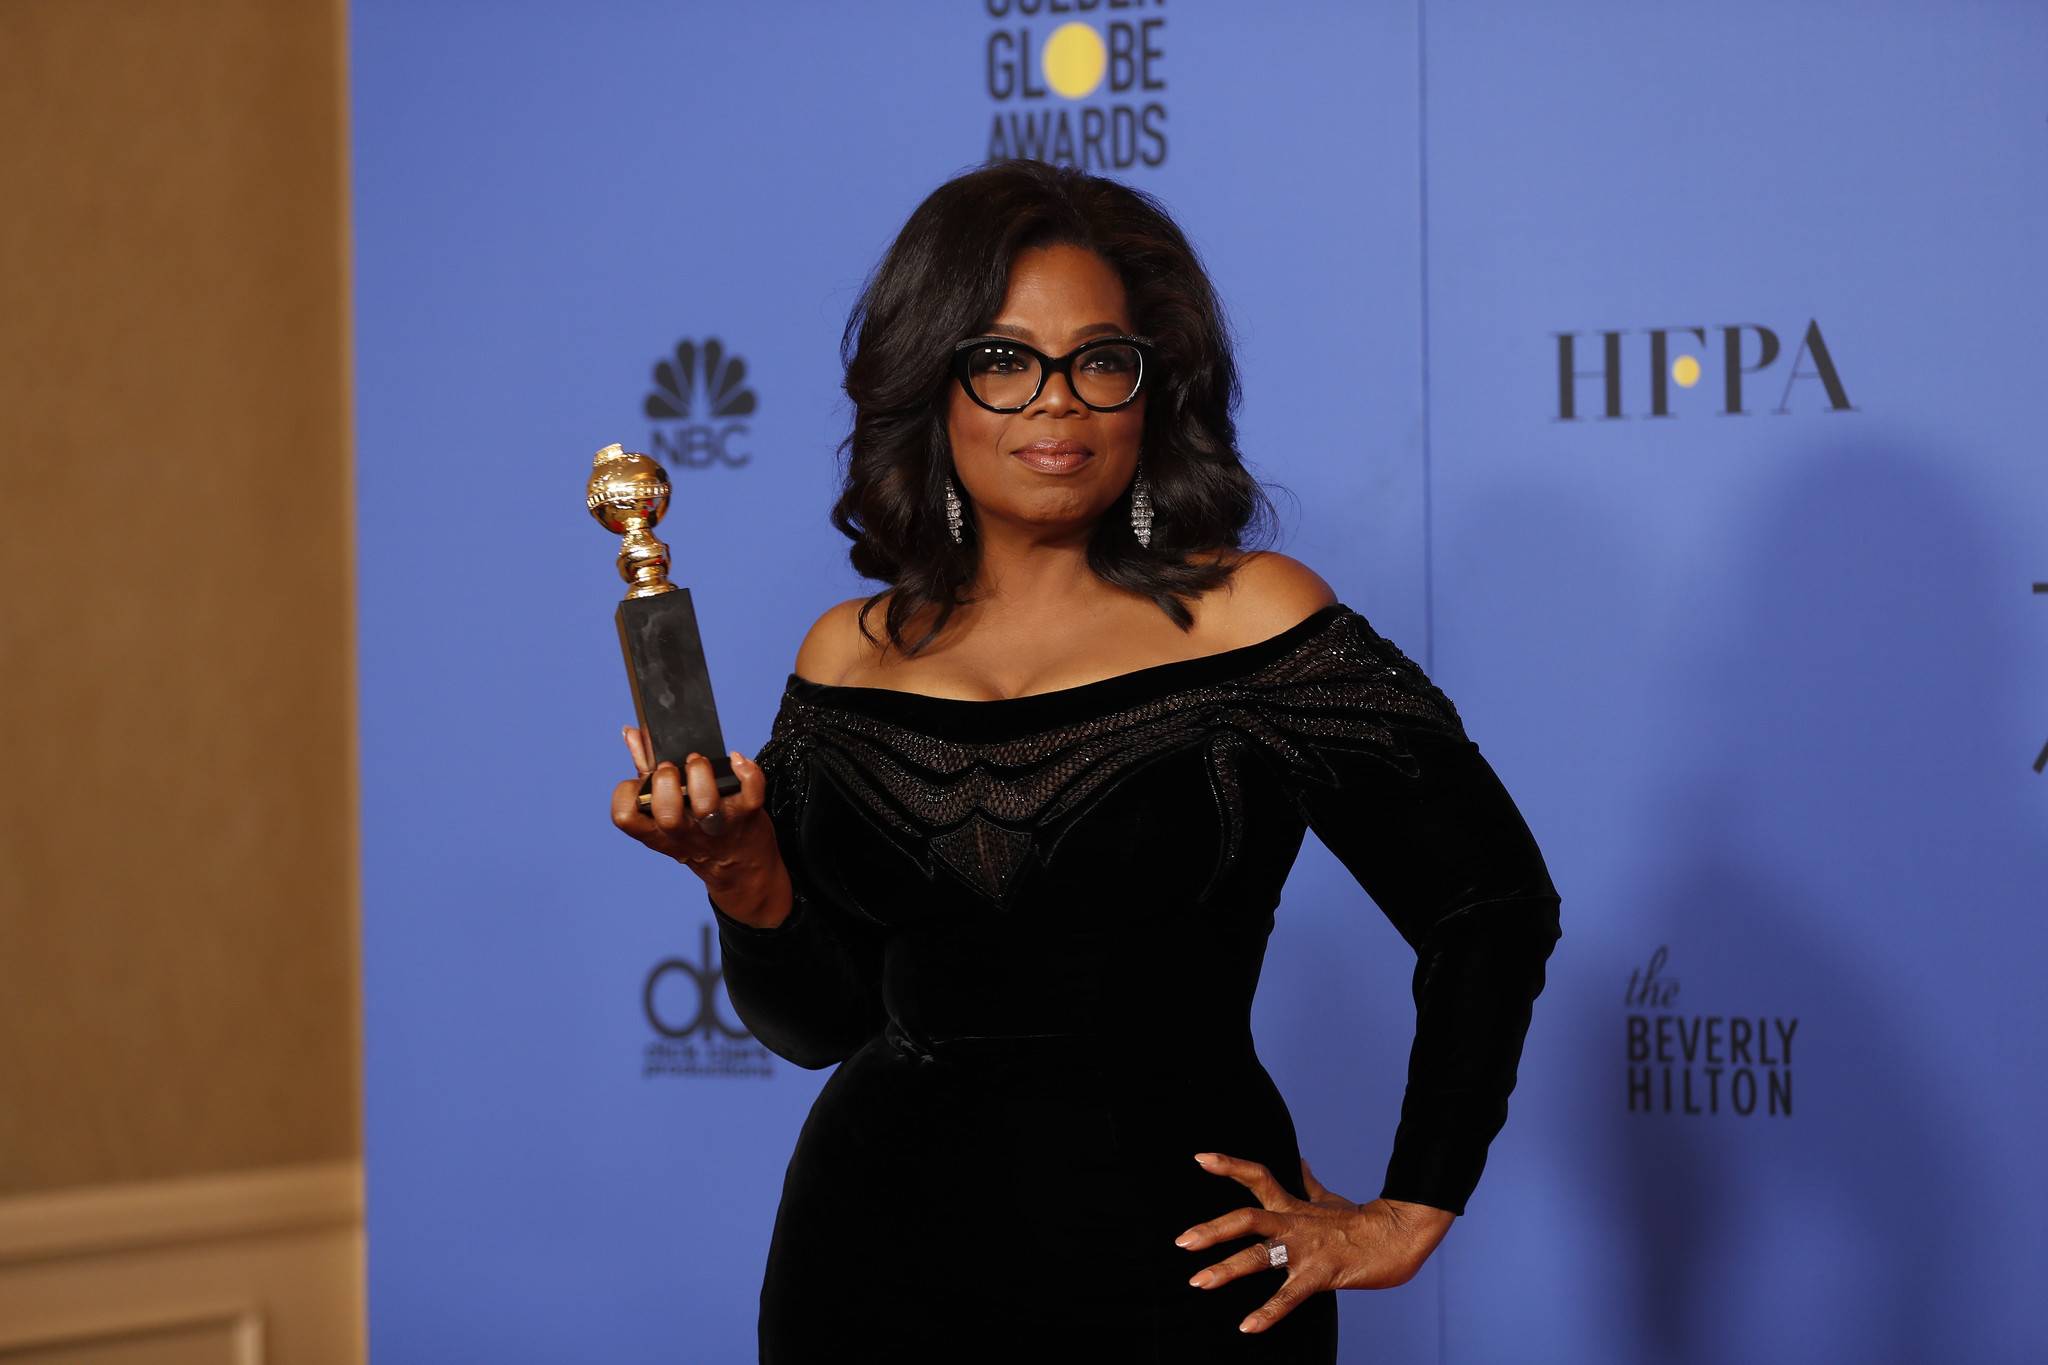 BEVERLY HILLS, CA - January 7, 2018 Oprah Winfrey won the Cecil B. DeMille Awards in the Photo Dea